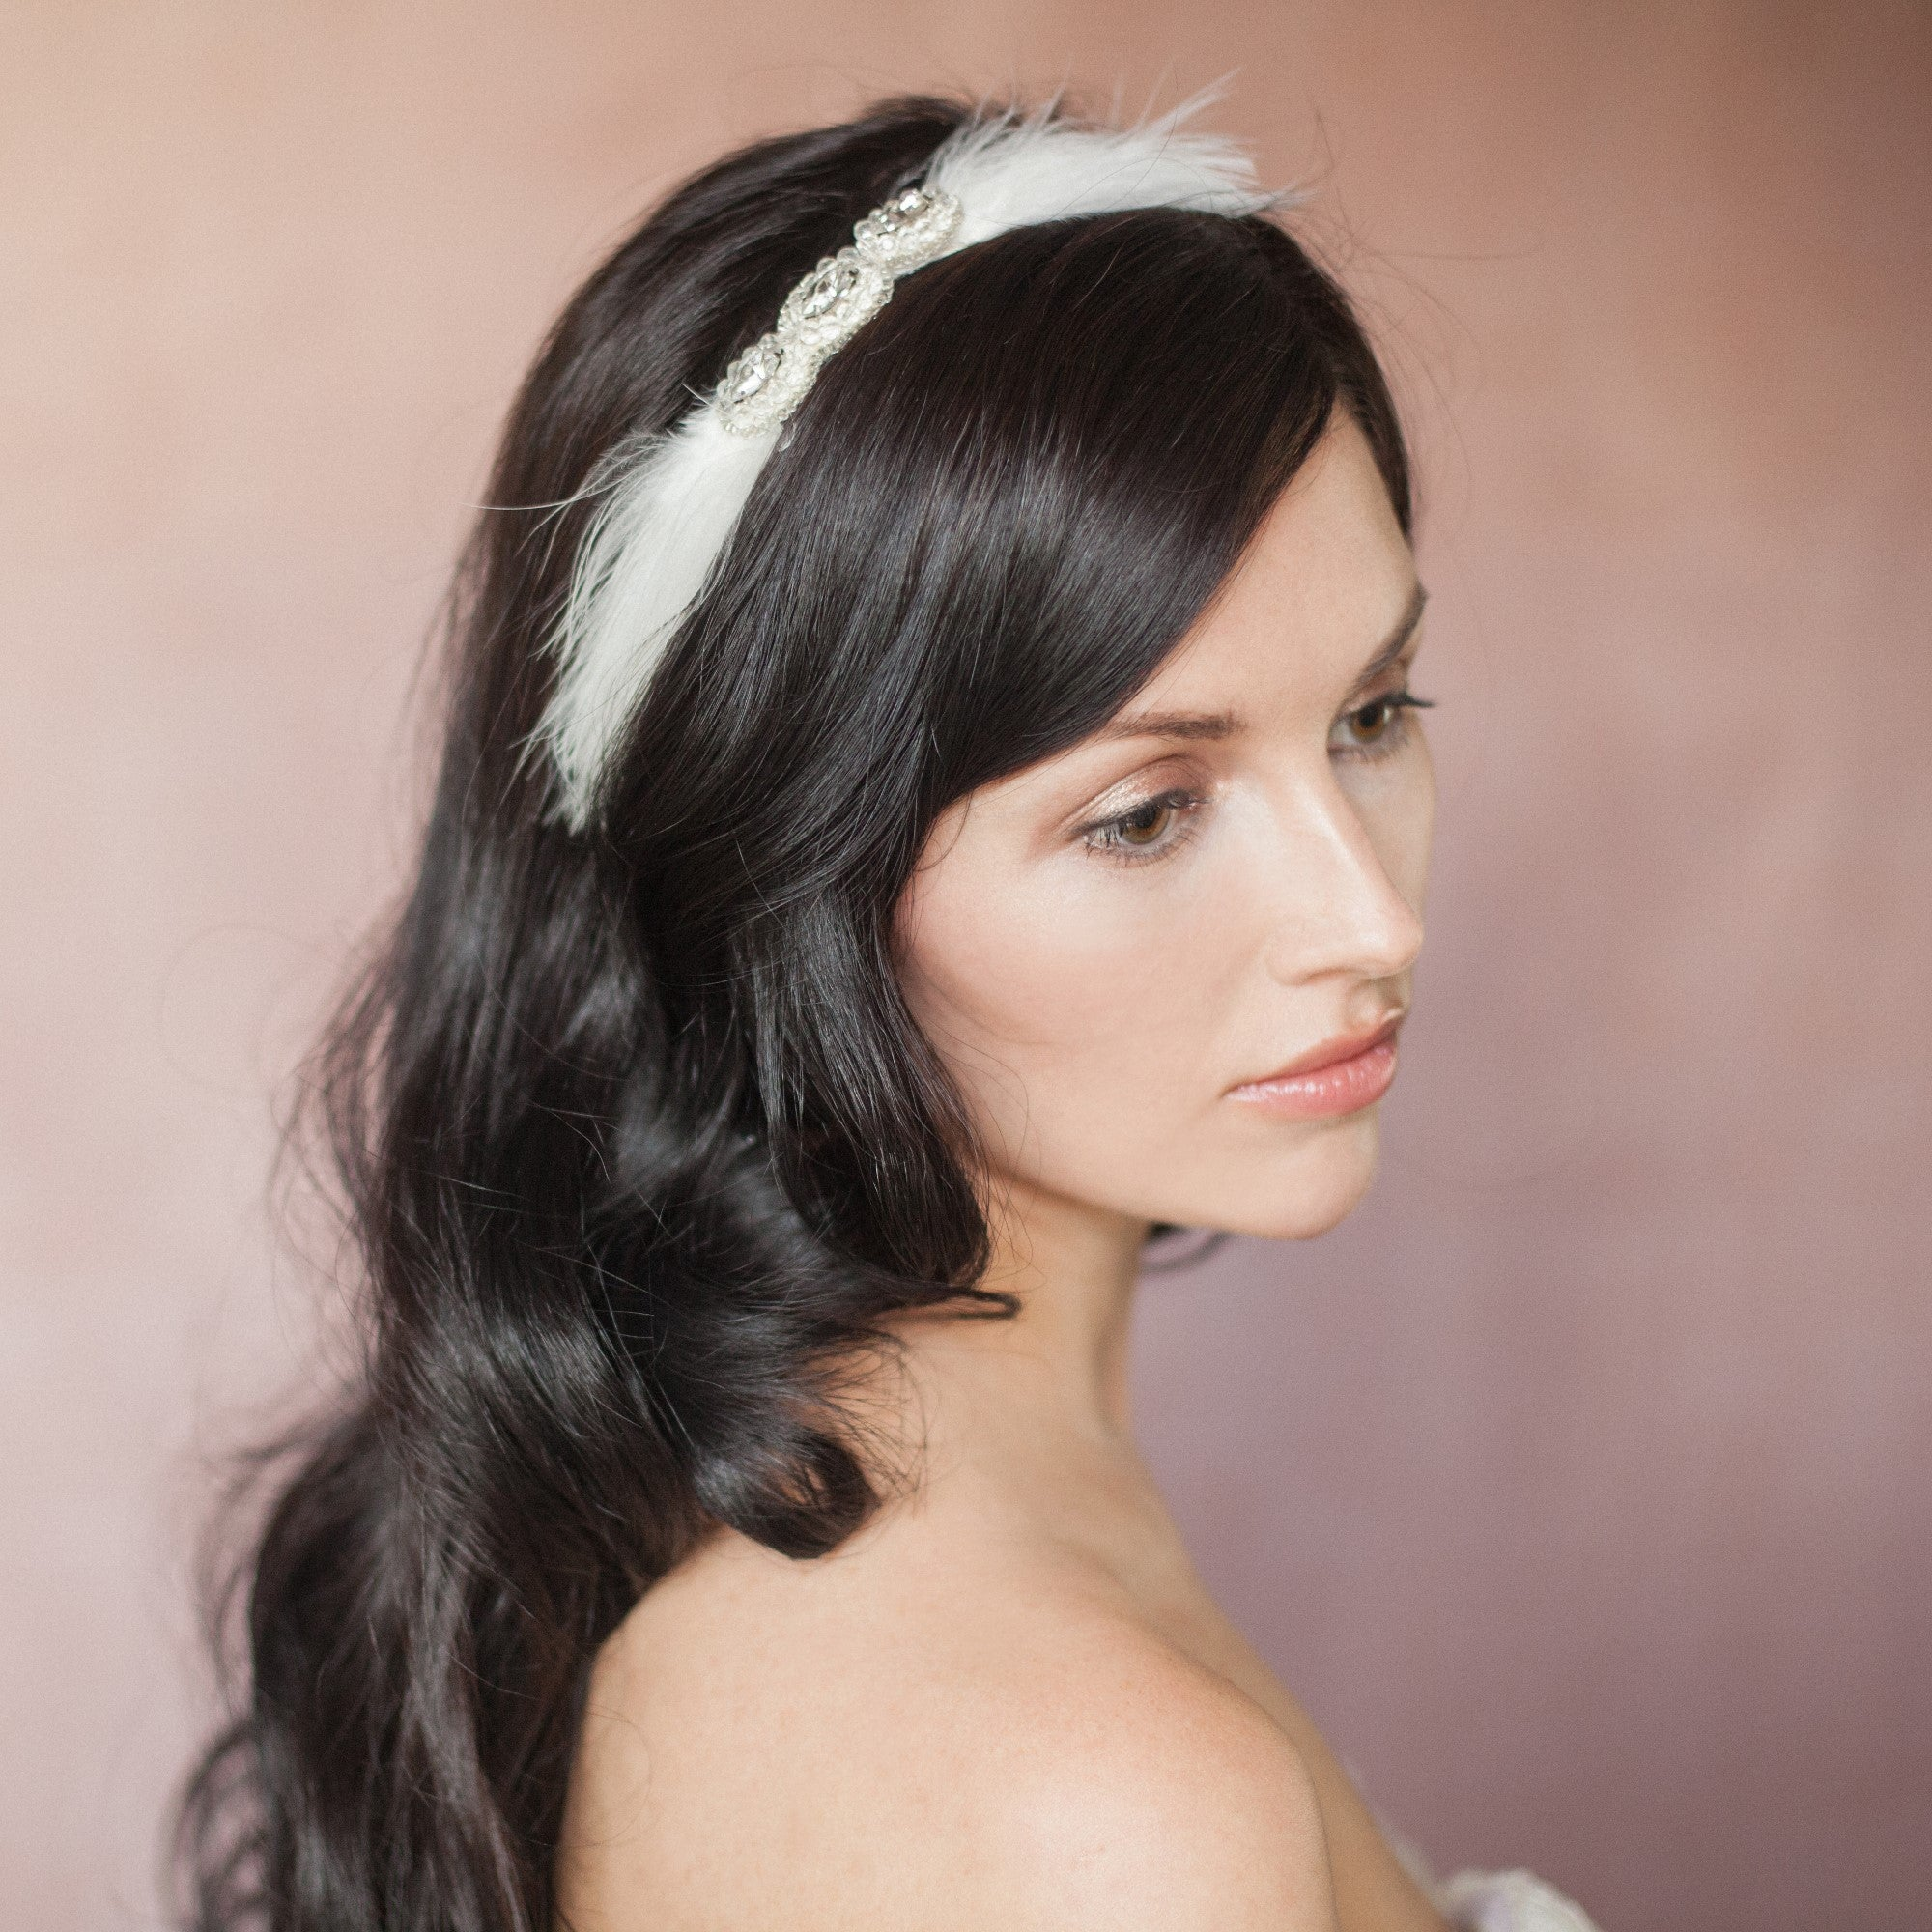 Kiki bridal headband By Britten Weddings